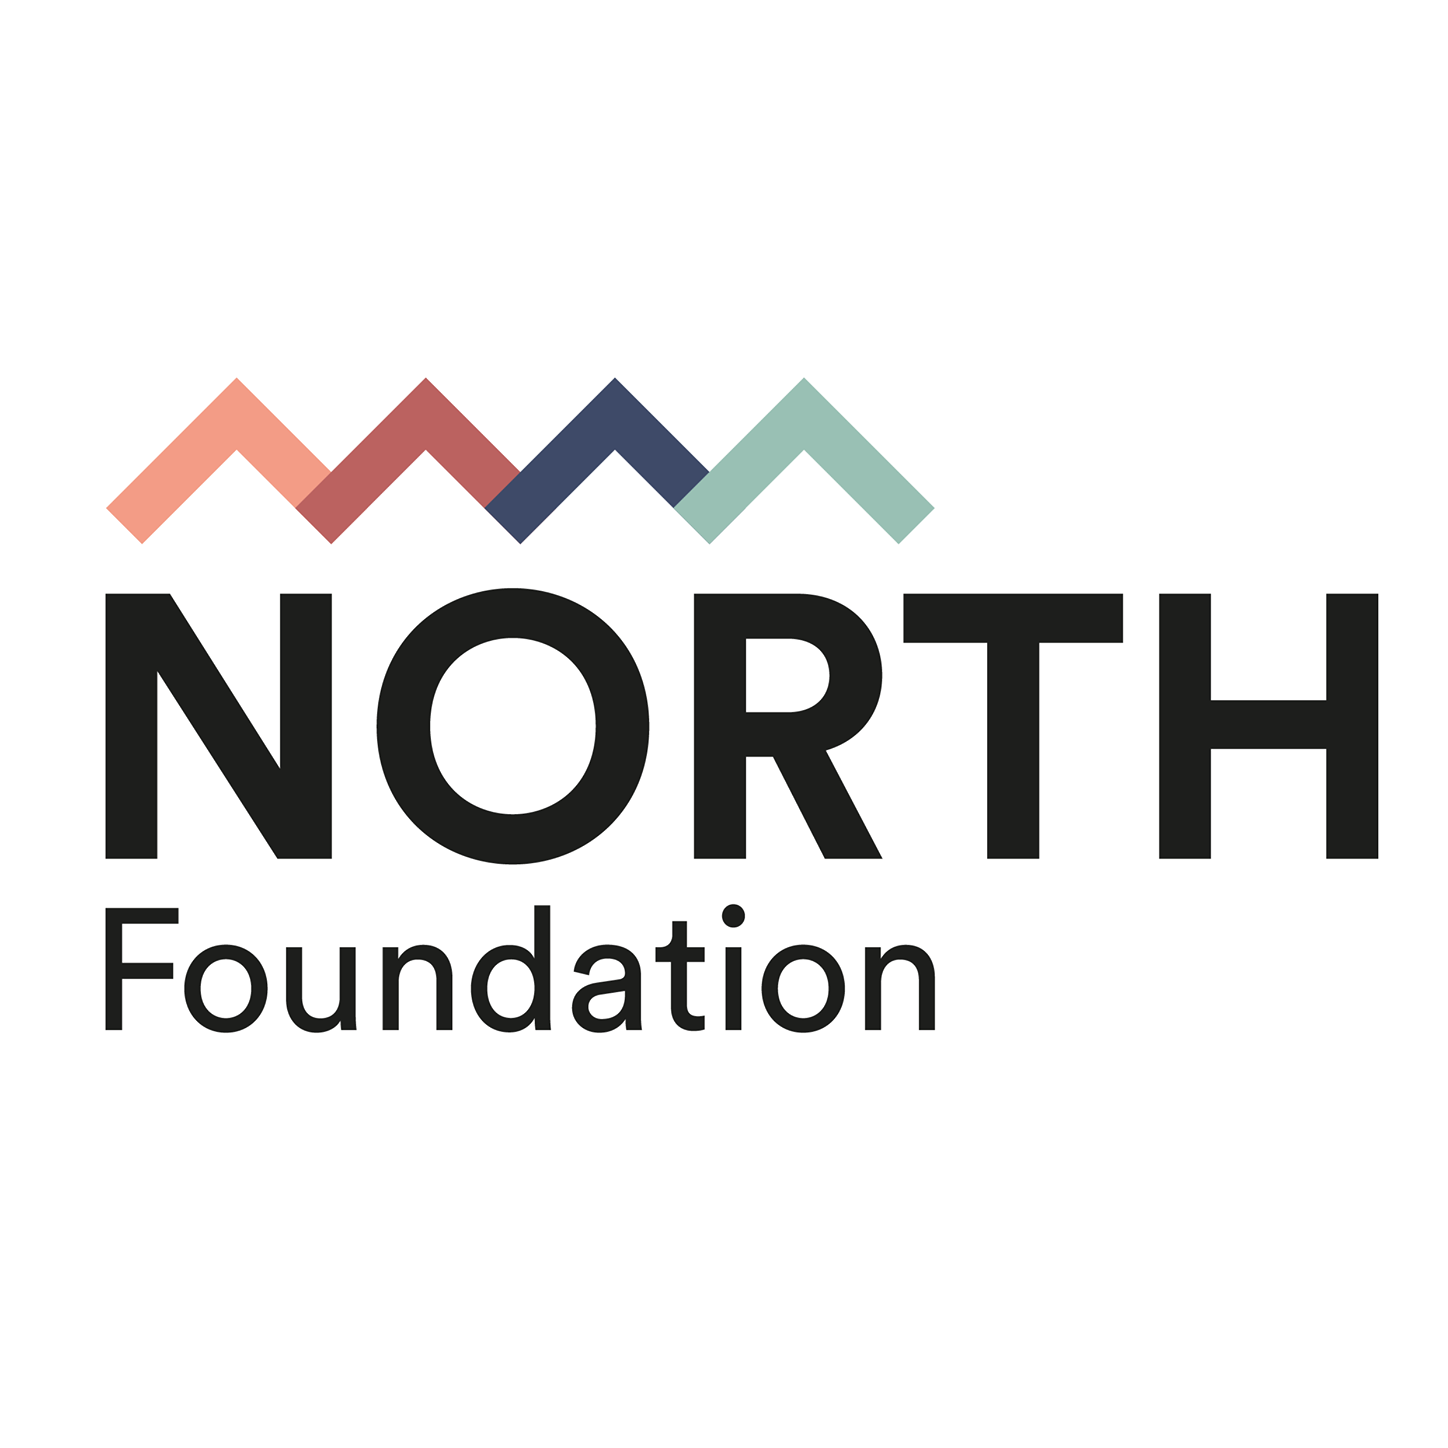 North Foundation